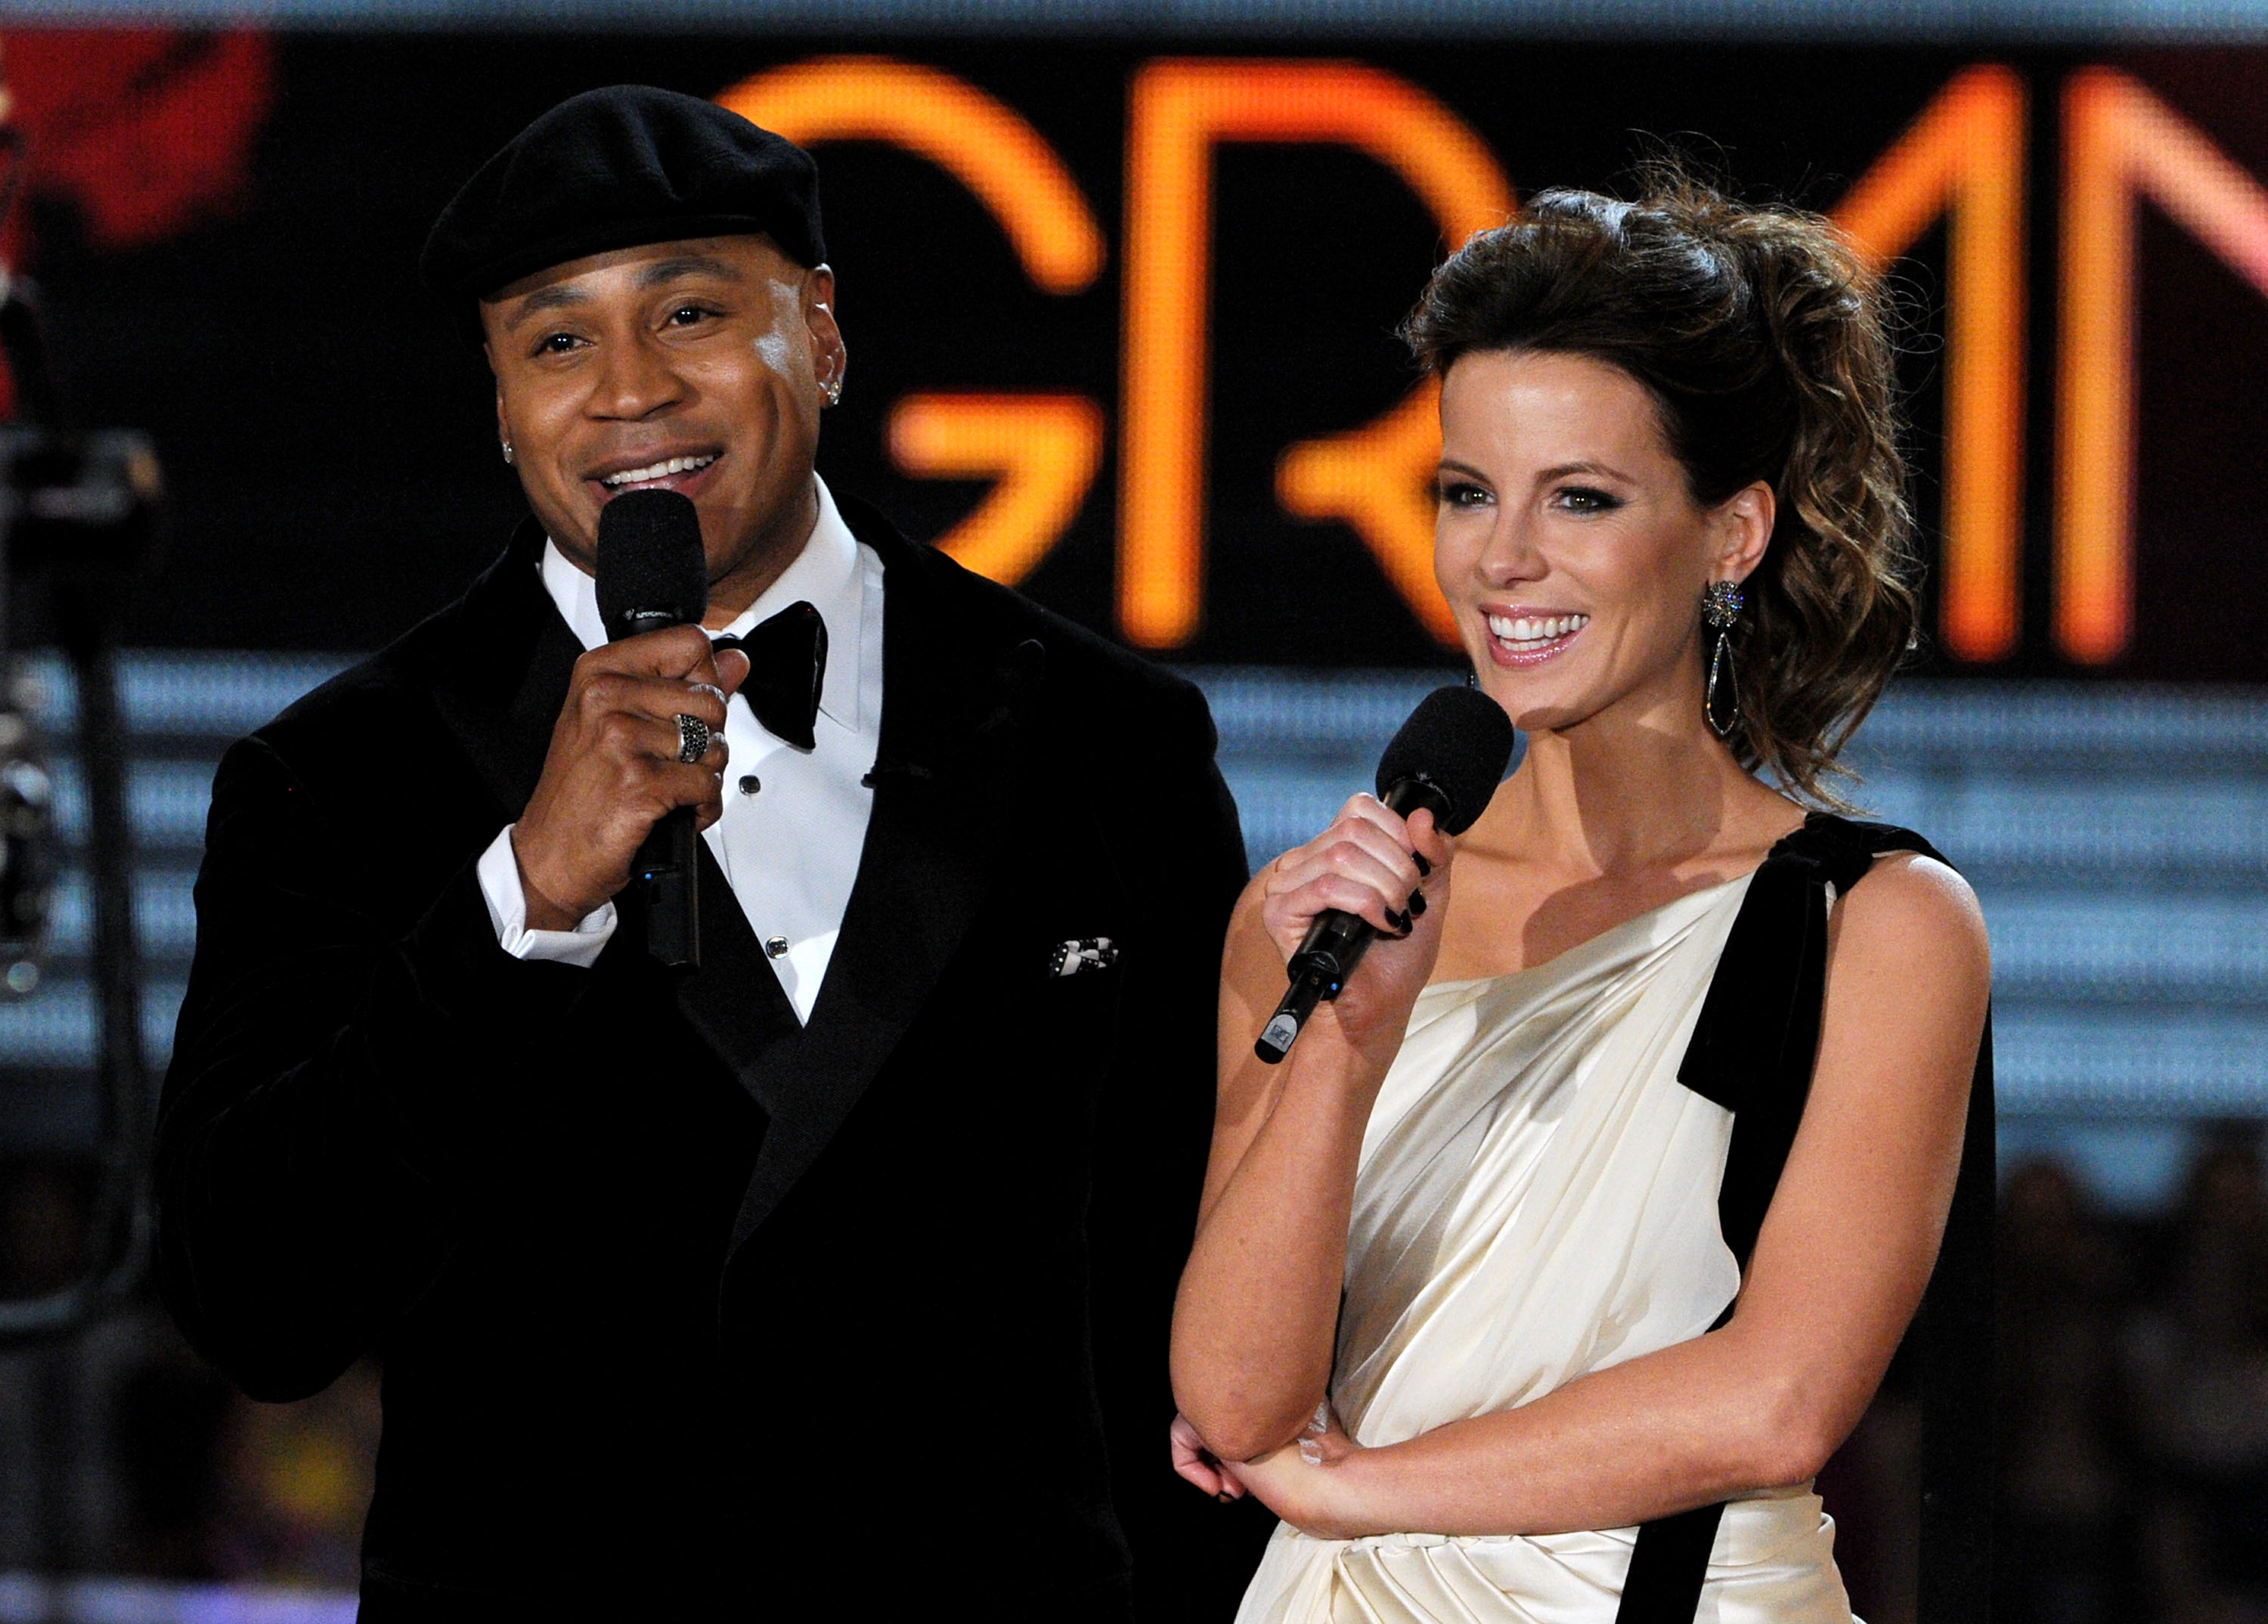 LL Cool J and Kate Beckinsale were onstage at the Grammys.